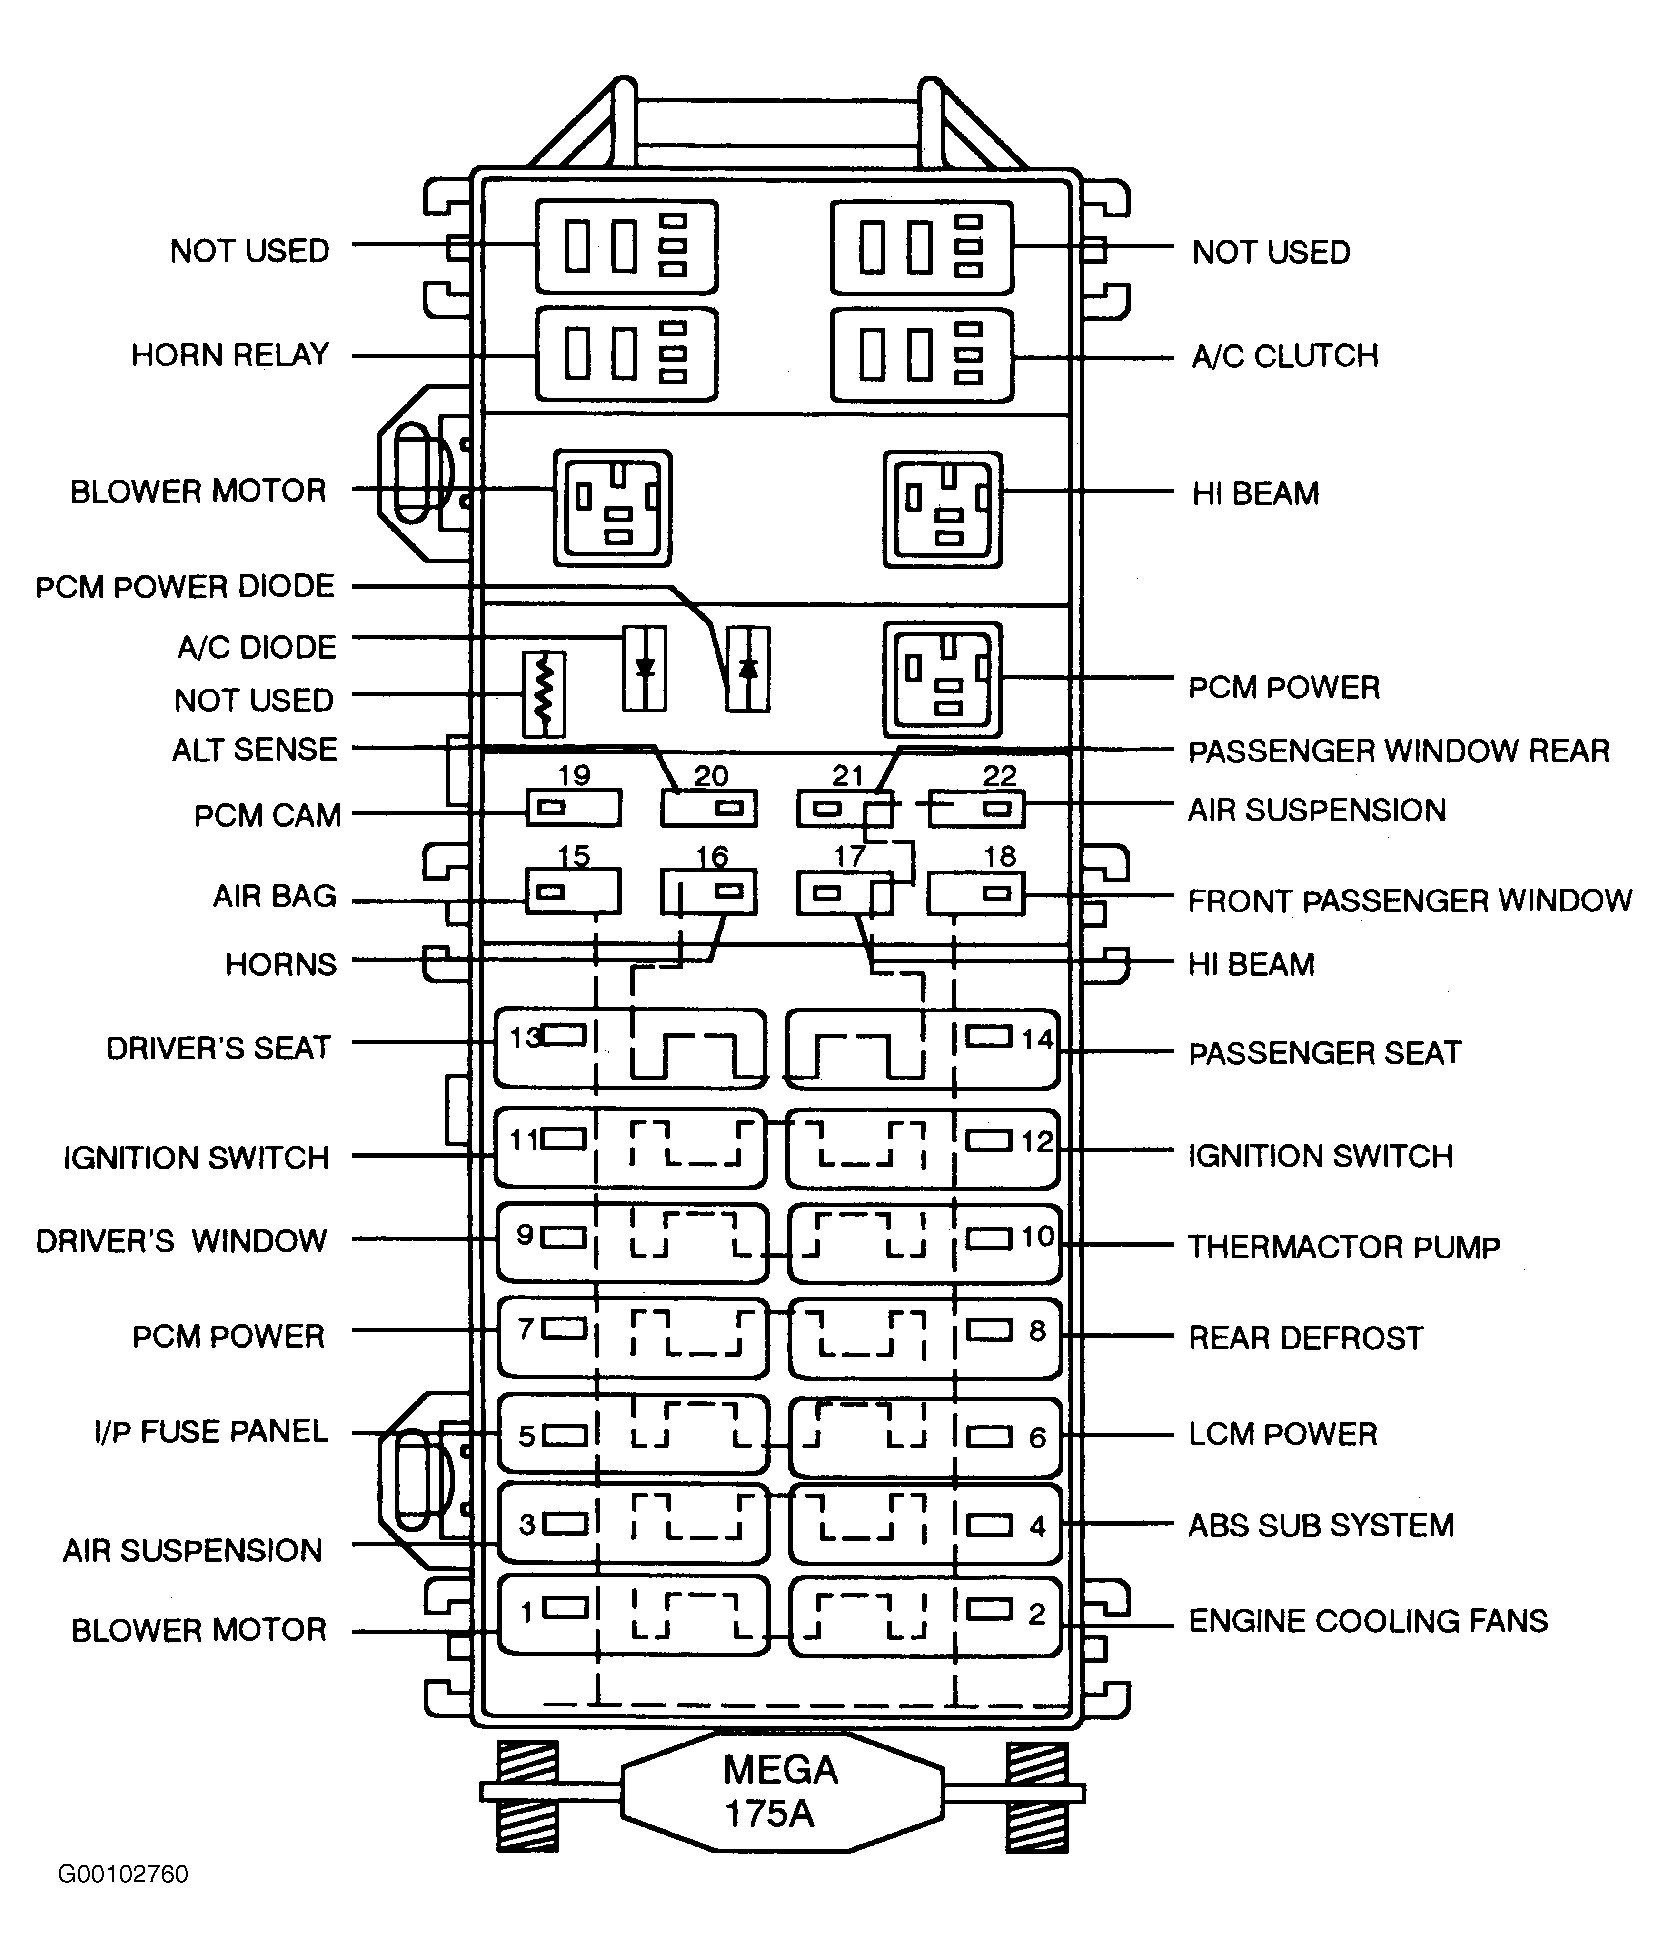 ep3 fuse diagram electrical wiring diagrams rh 21 lowrysdriedmeat de electrical fuse diagram ep3 interior fuse [ 1670 x 1958 Pixel ]